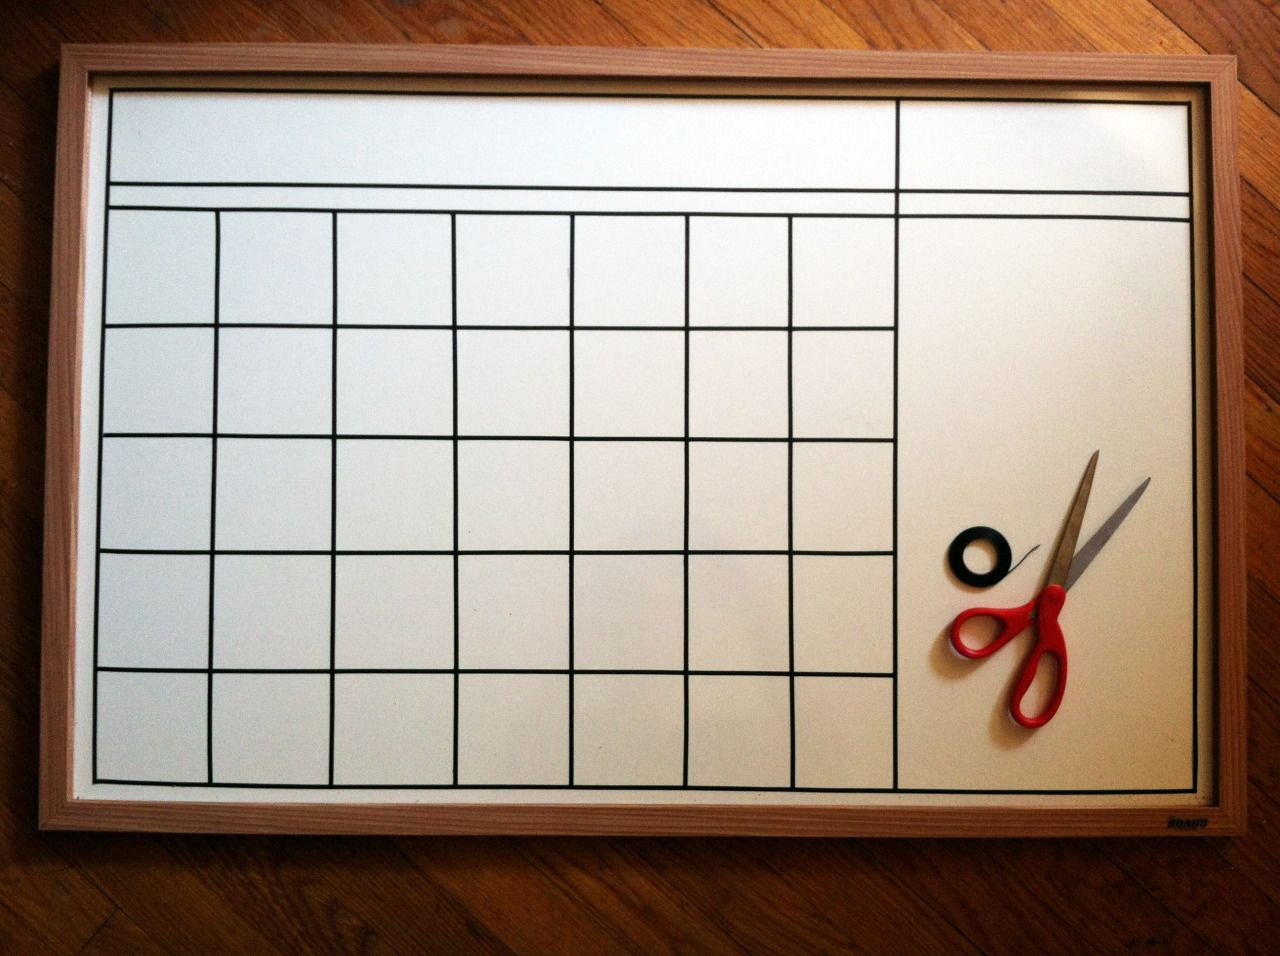 Diy Calendar Board : Diy calendar on a whiteboard clean and organize